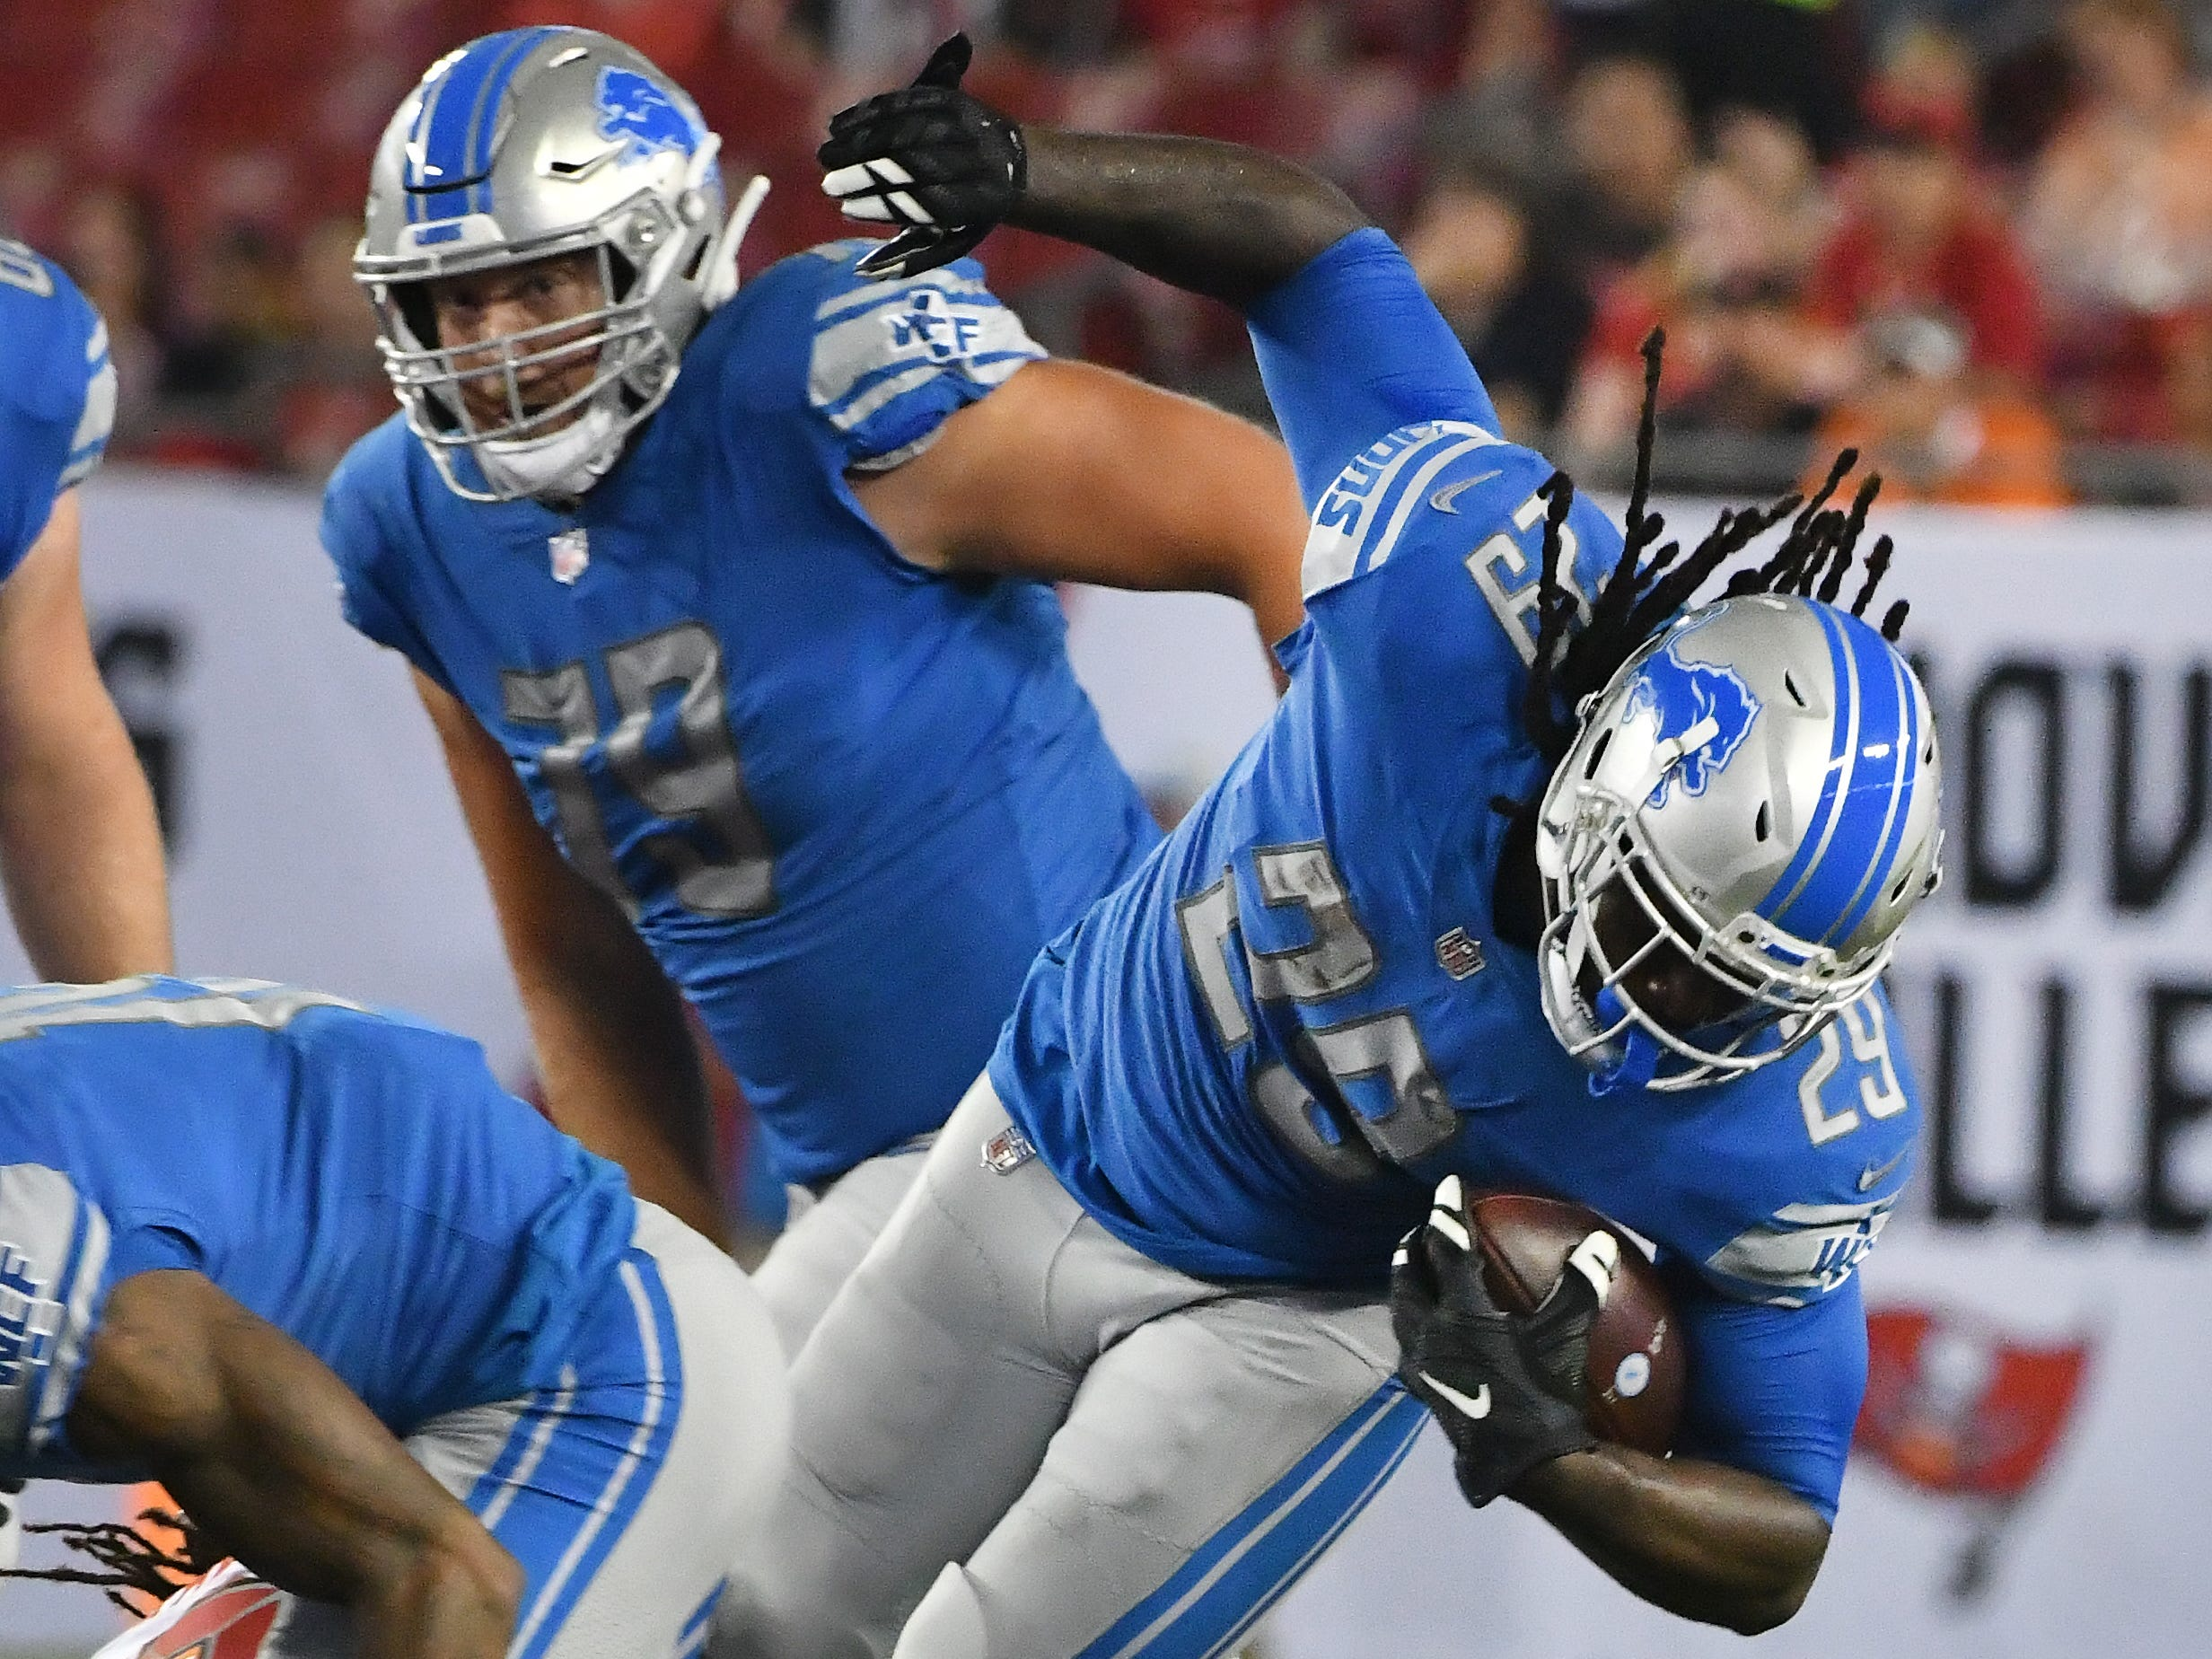 LIons' LeGarrette Blount is upended in the first quarter.